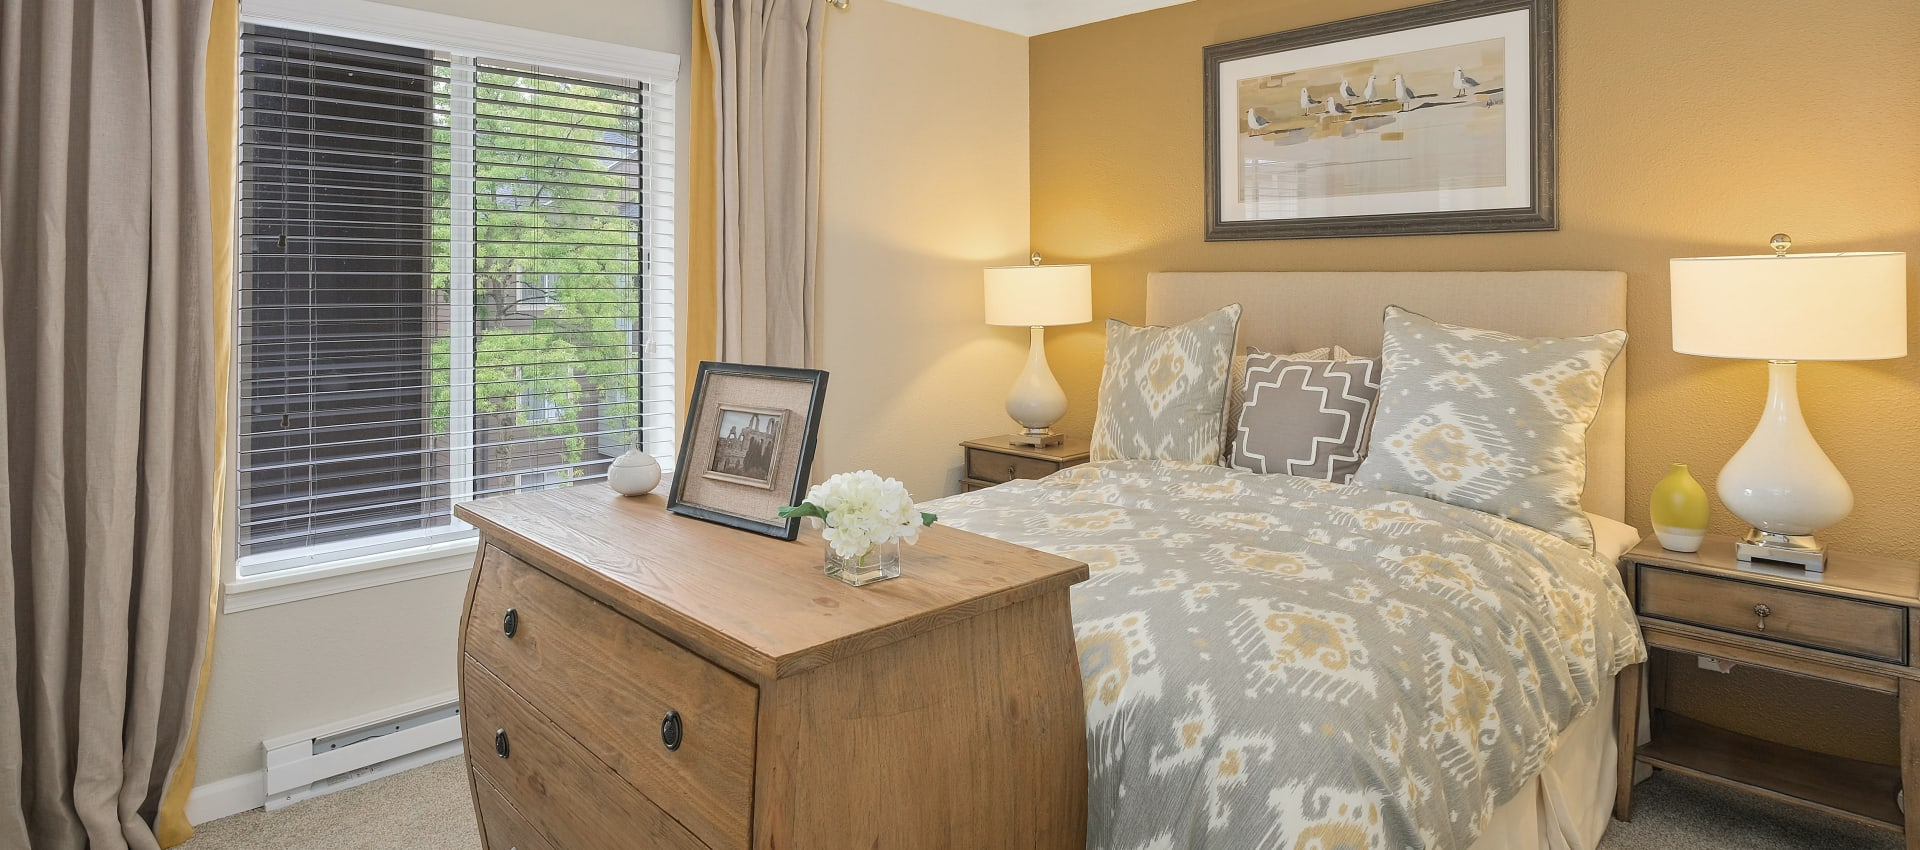 Bedroom at Waterhouse Place in Beaverton, OR